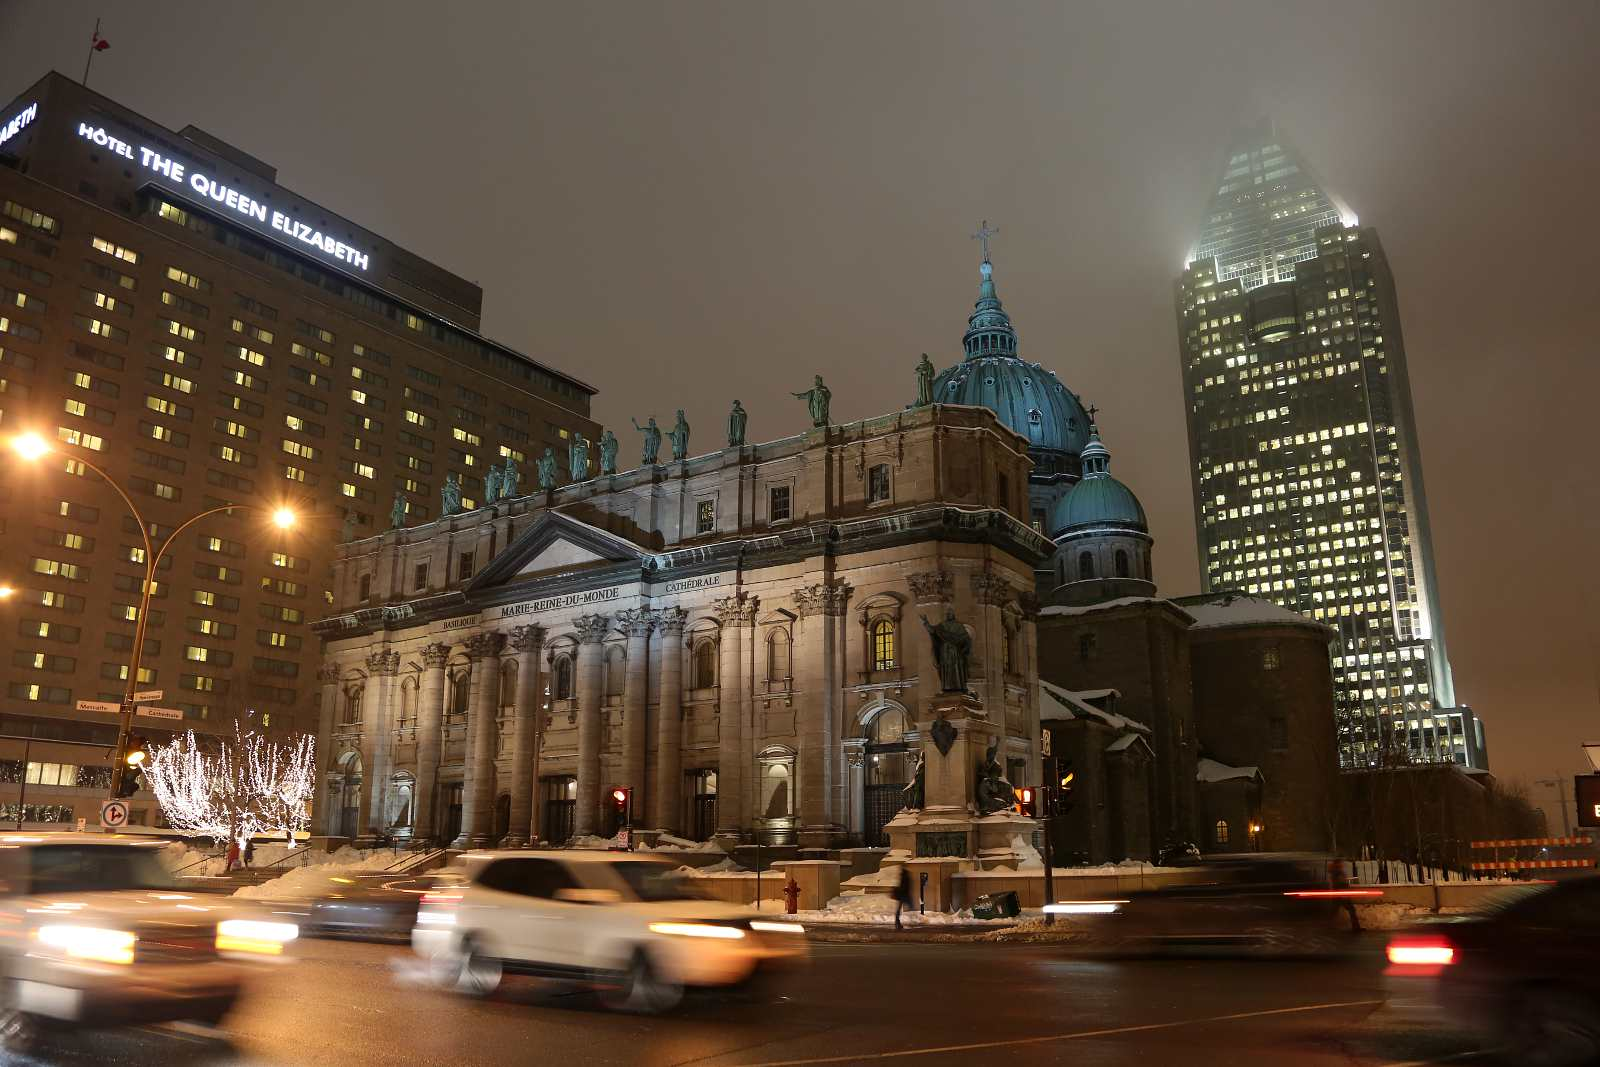 Montreal winter hotels perfectly situated to handle terrible weather include Fairmount Queen Elizabeth.